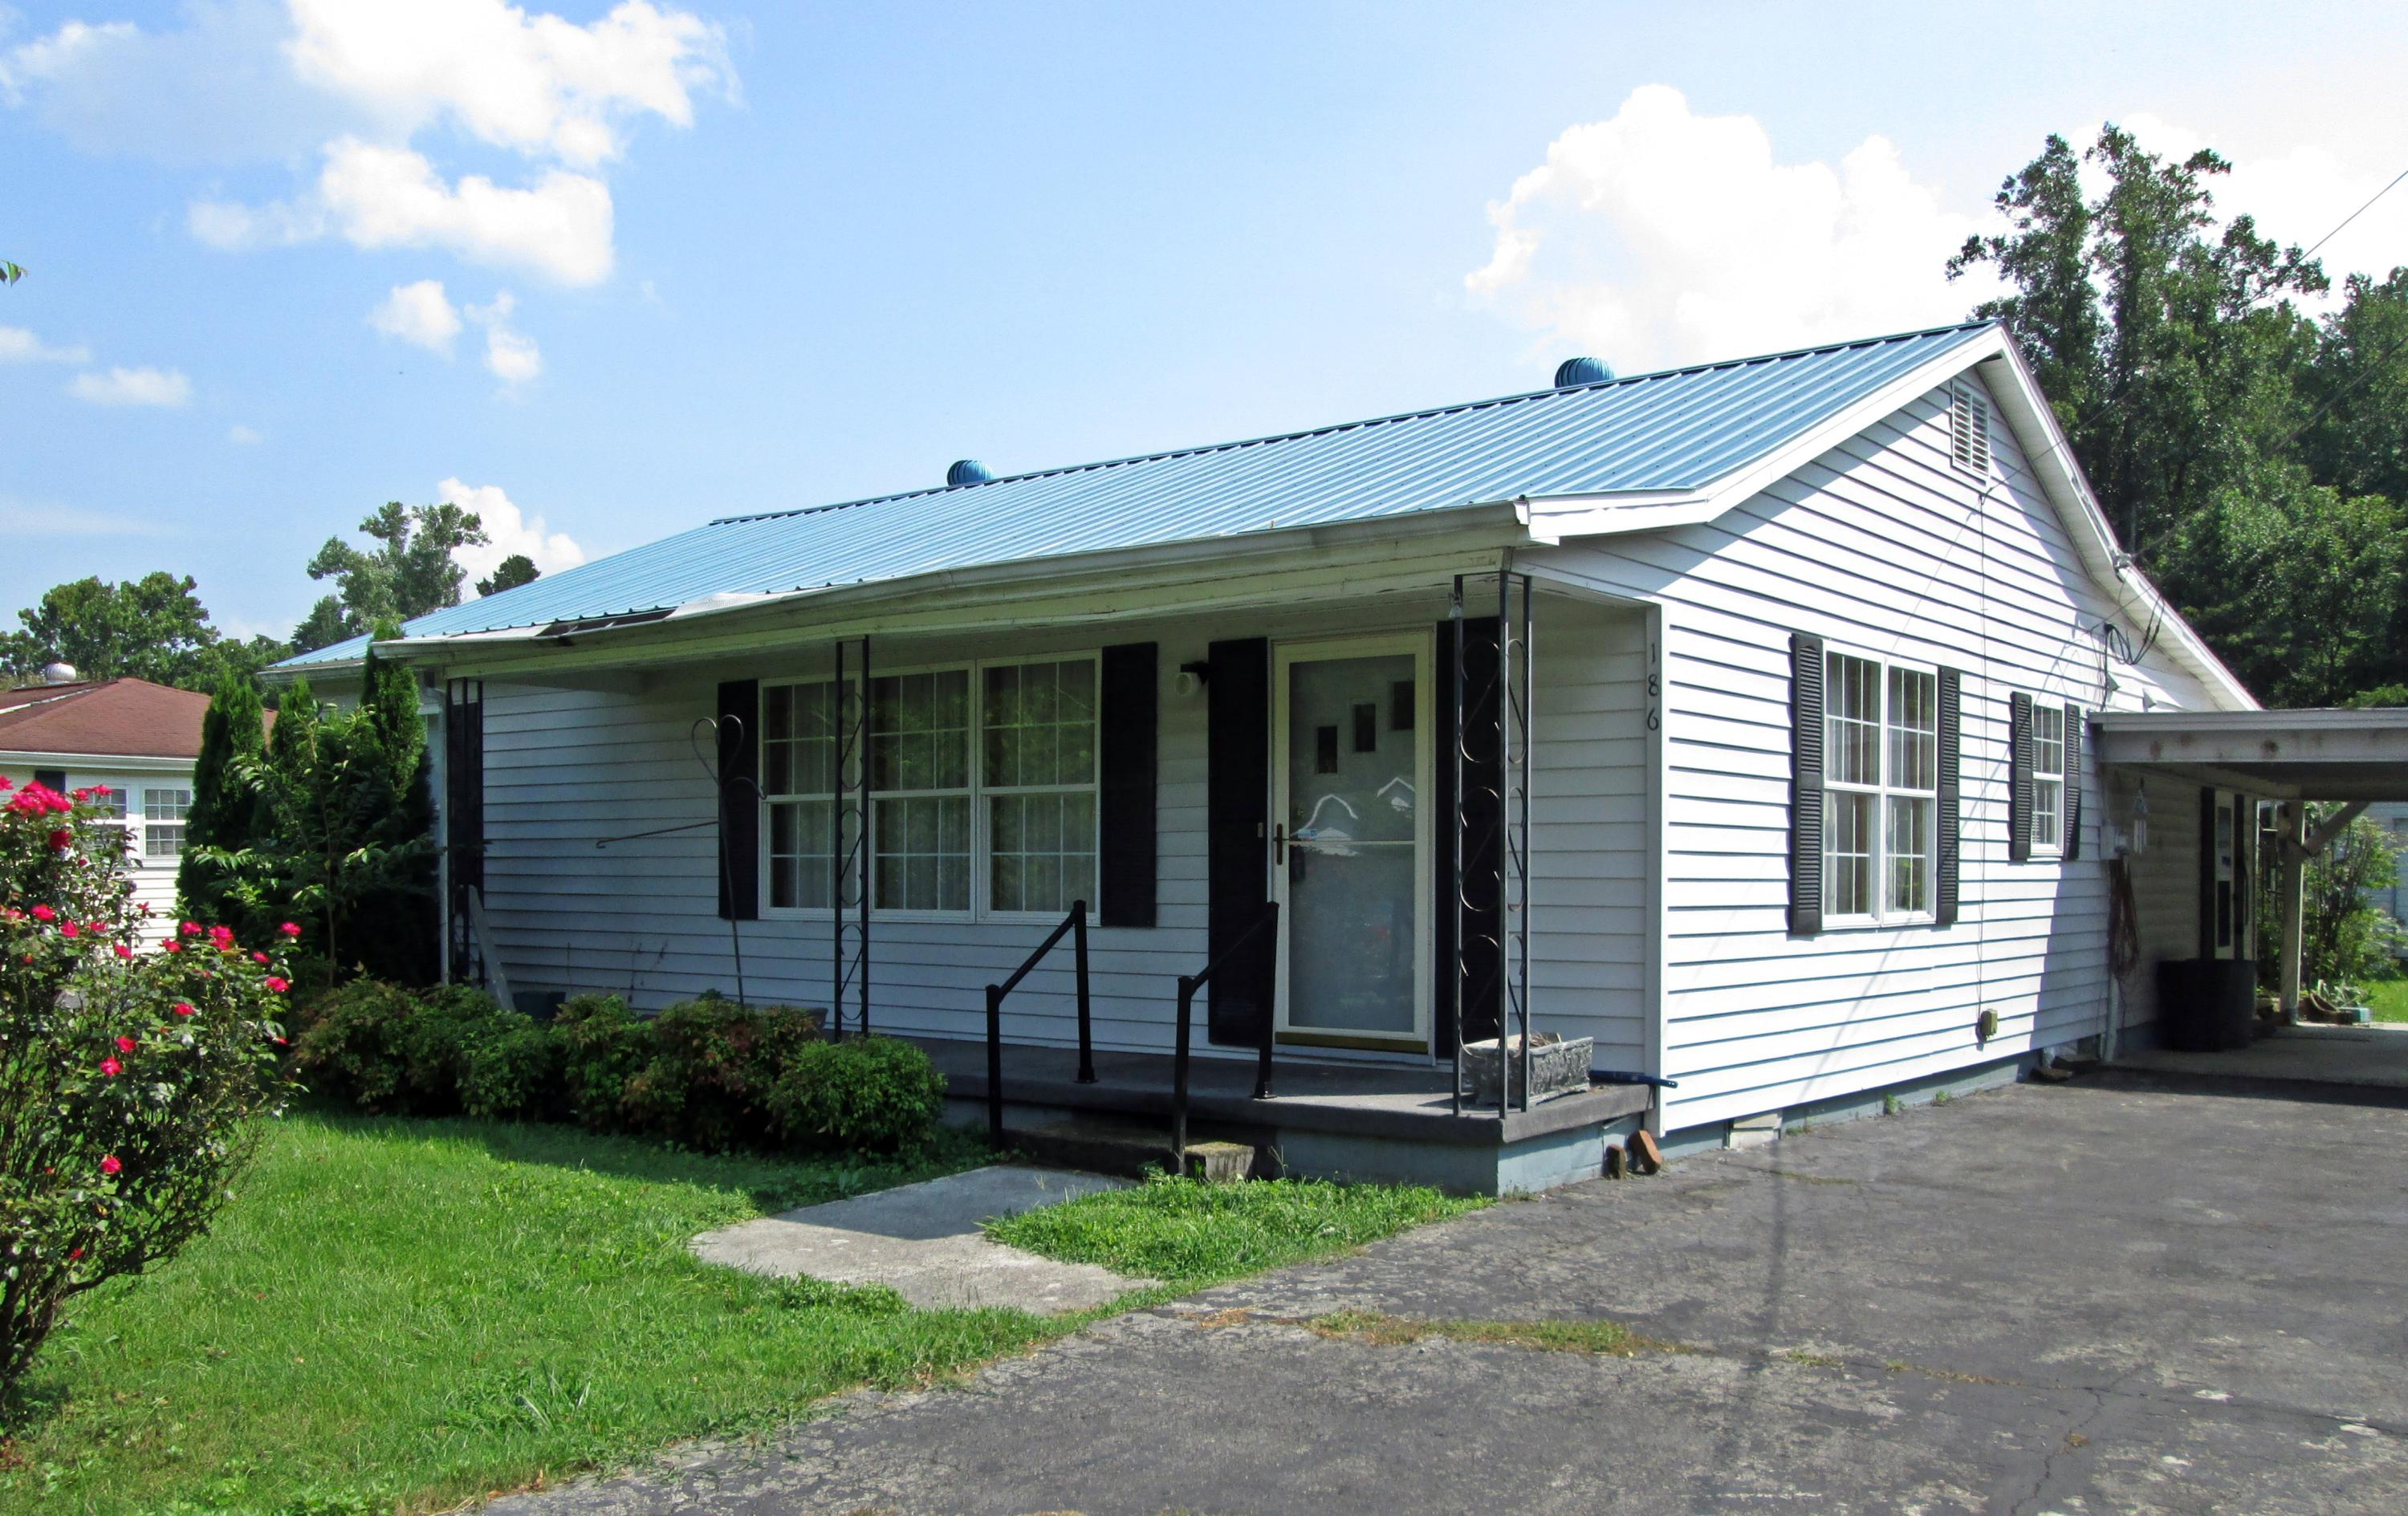 186 Evans Ave, Spring City, TN 37381